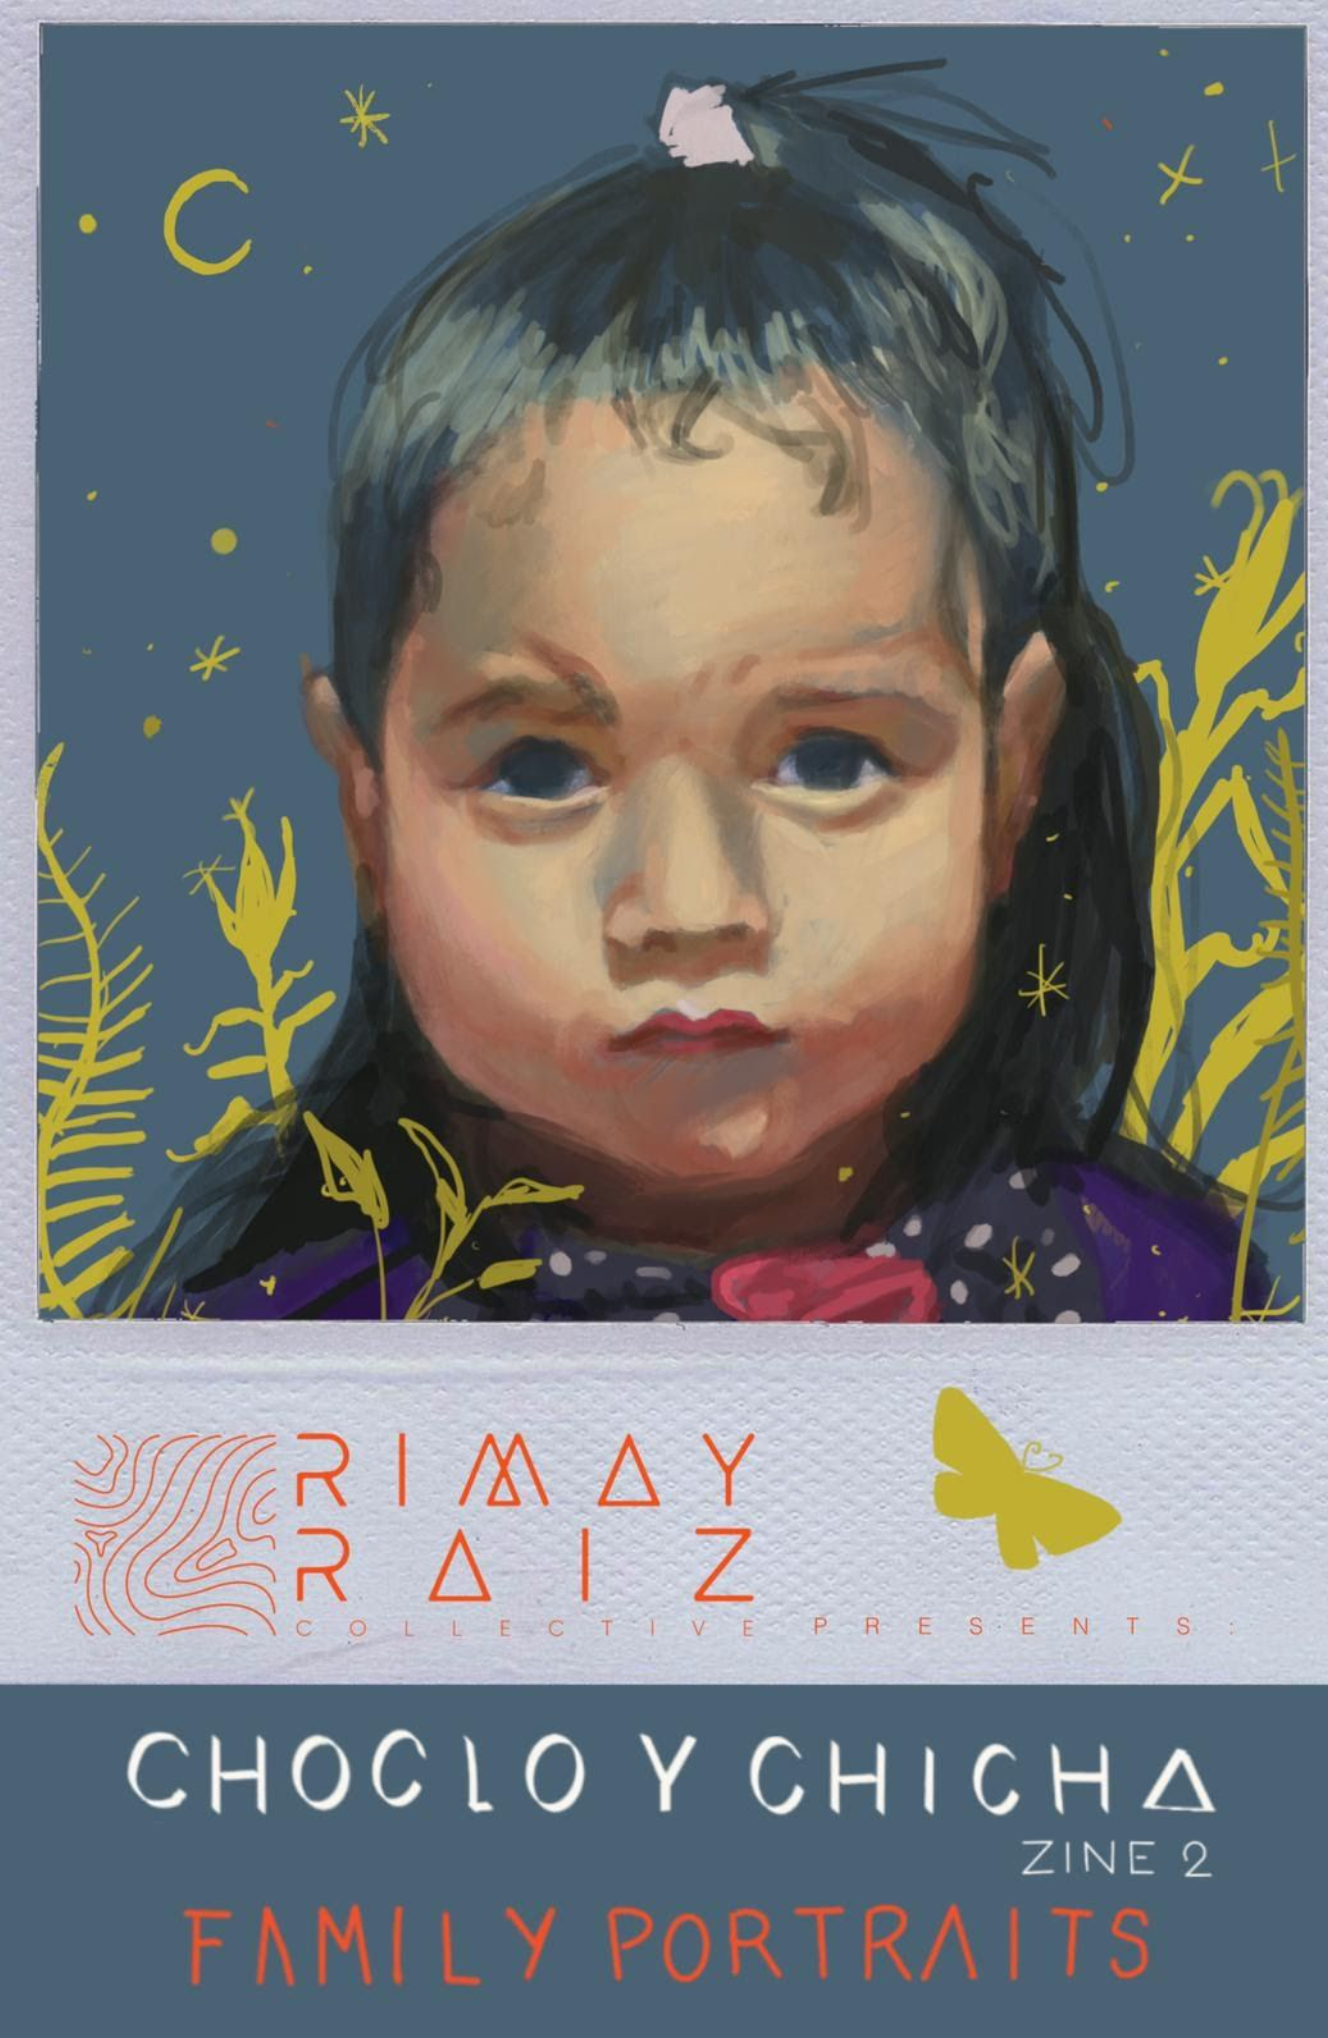 Portrait of a child with night sky and plants in the background